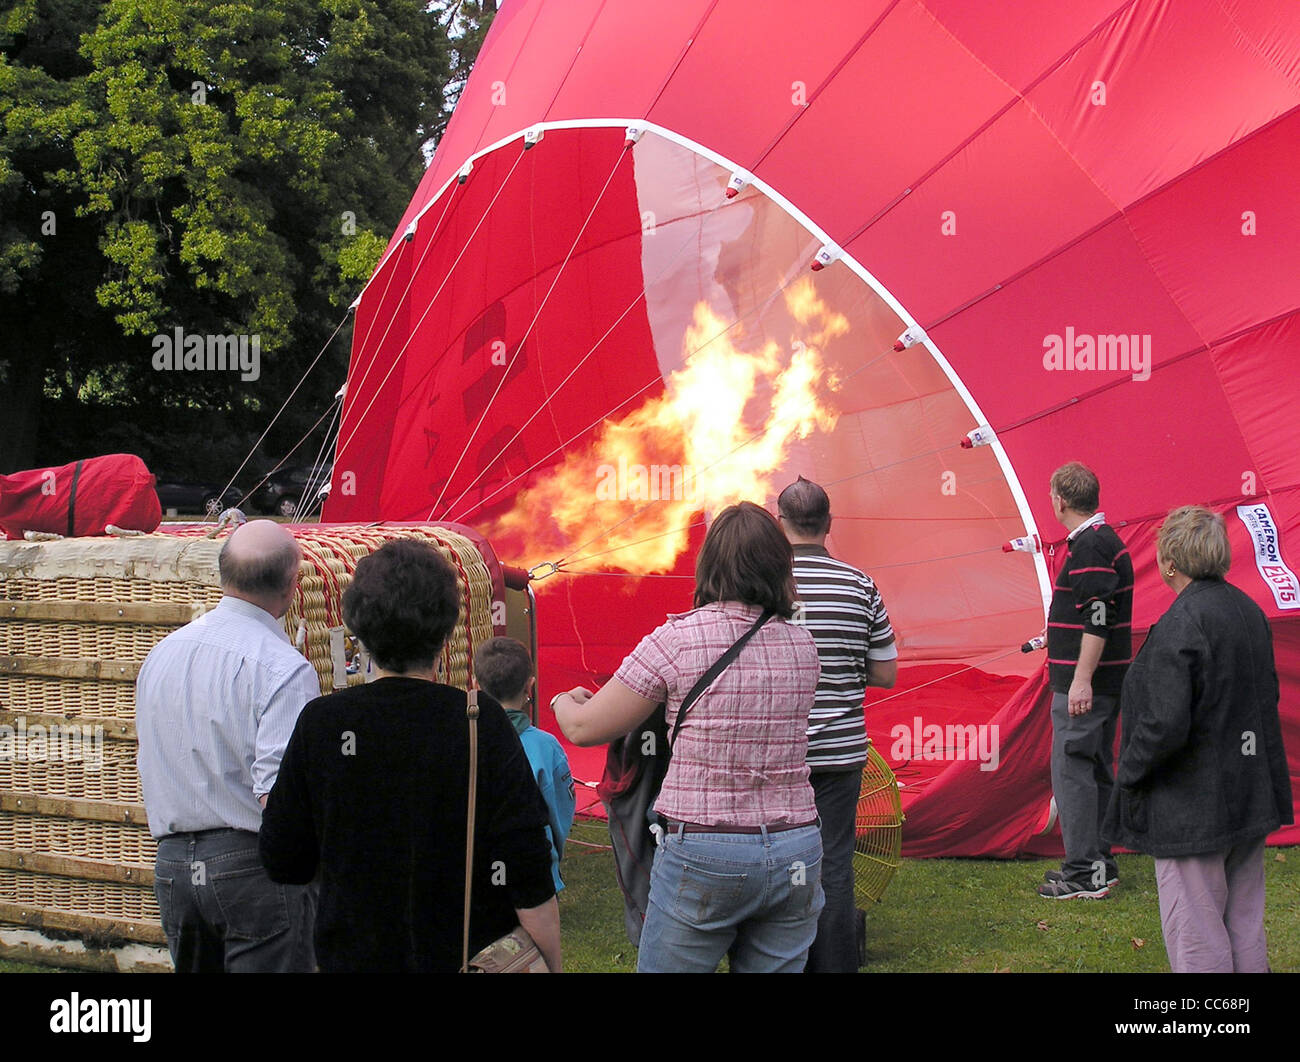 Firing the propane burners during final inflation of a hot air balloon, Royal Victoria Park, Bath, England. - Stock Image